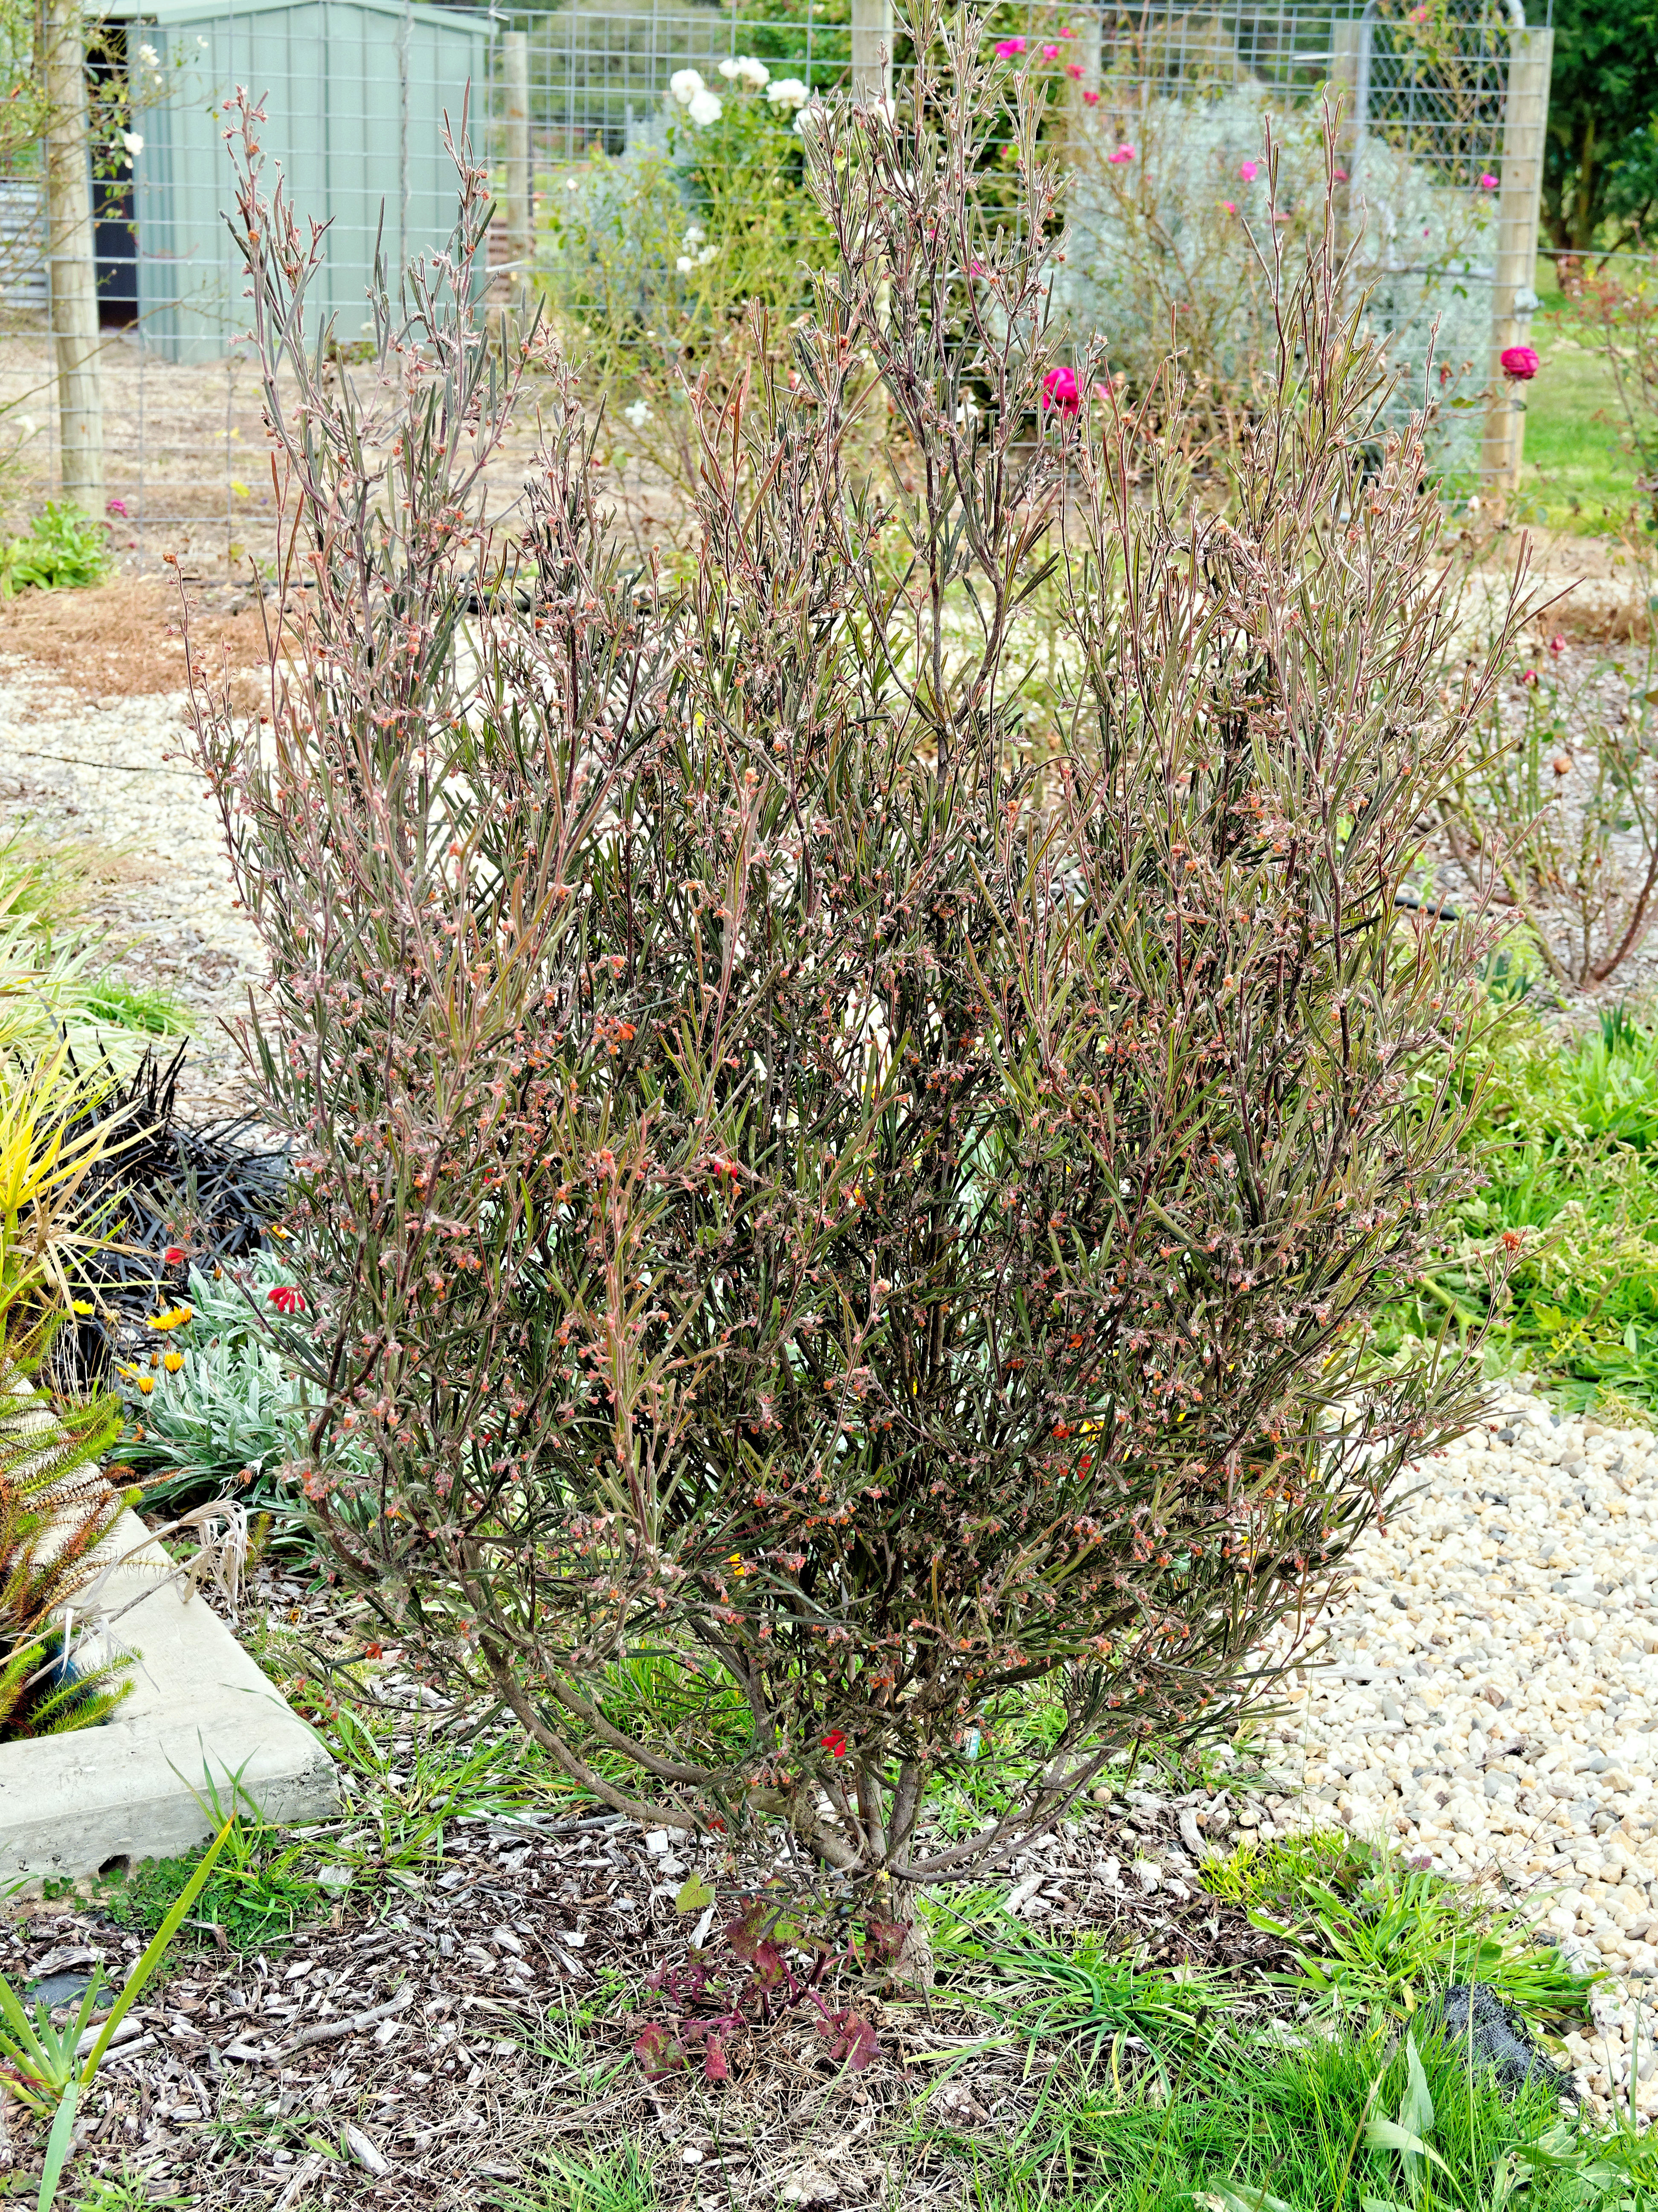 This should be Grevillea-5.jpeg.  Is it missing?